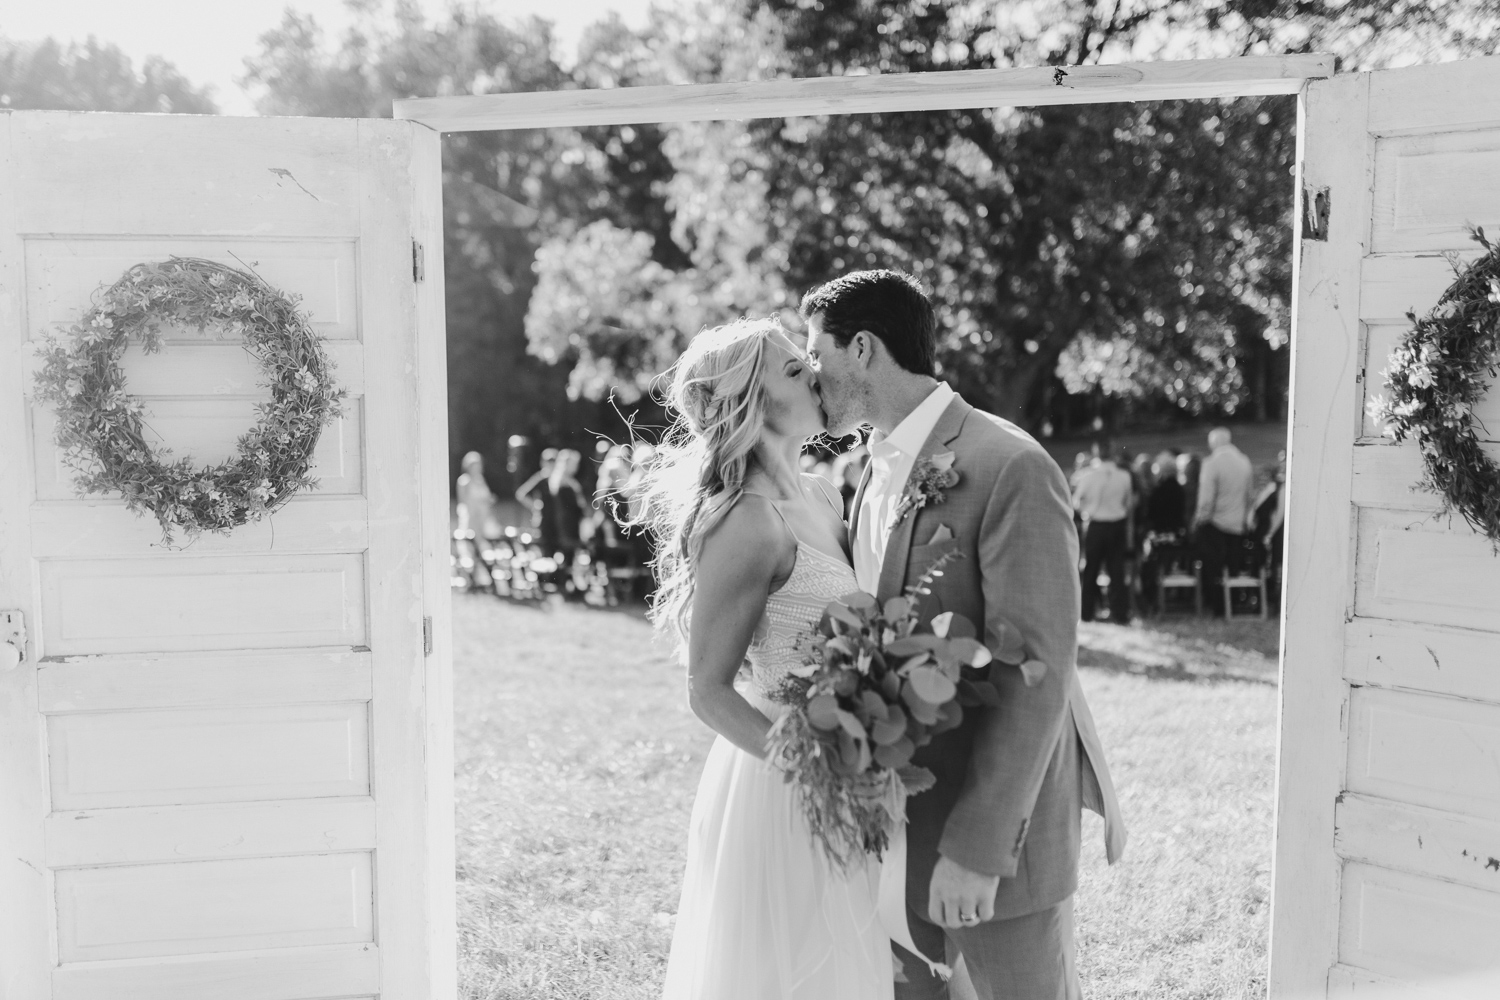 northcarolinaweddingphotographer-79